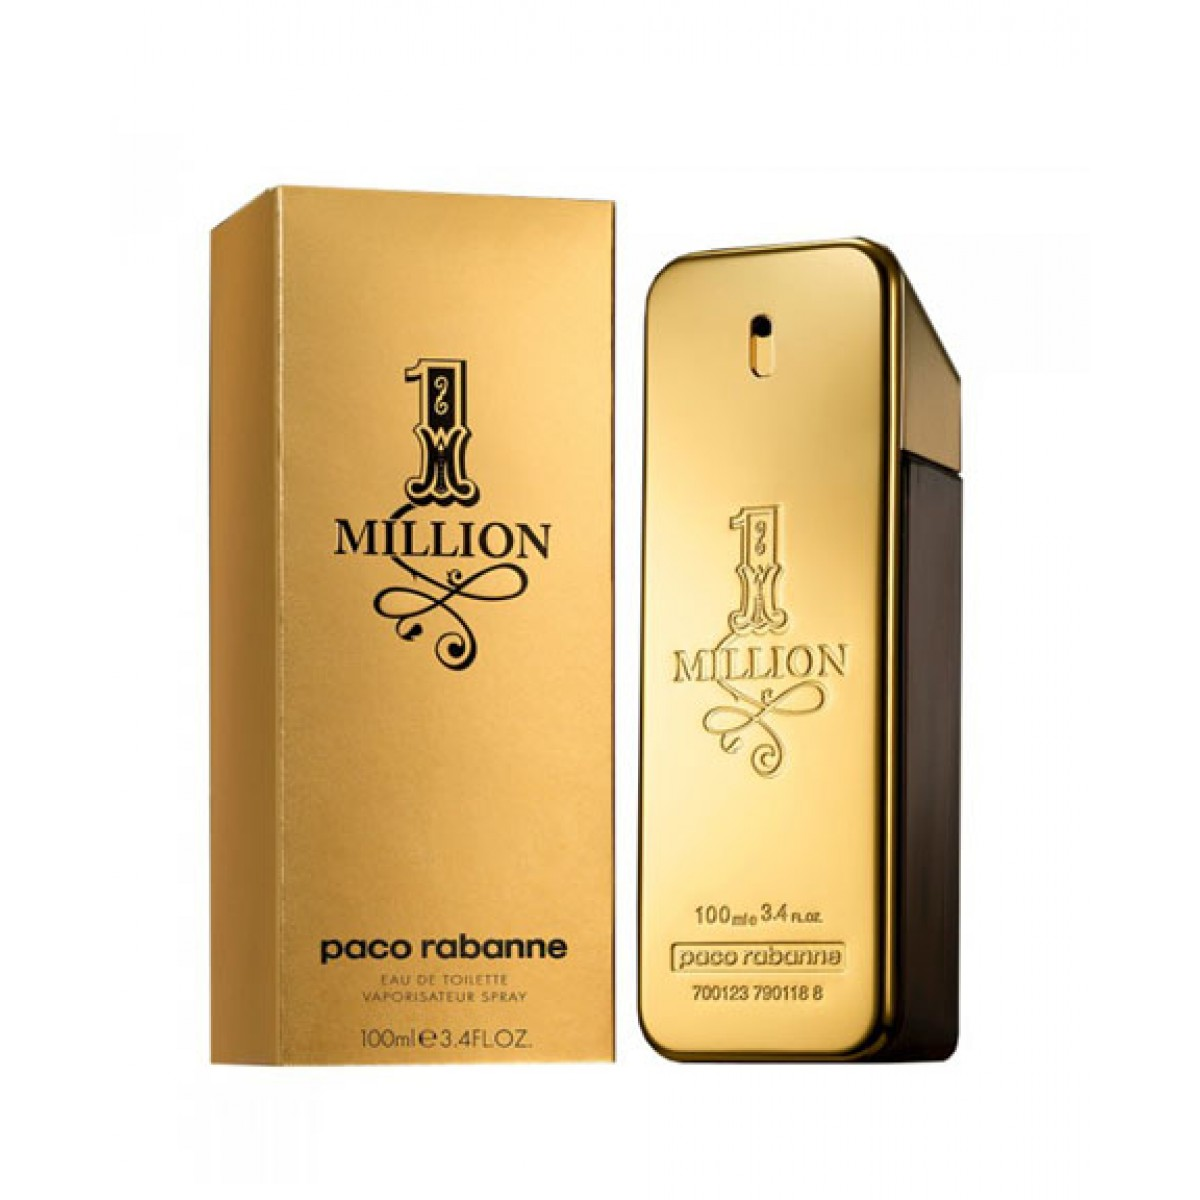 Paco Rabanne 1 Million Perfume Price In Pakistan Buy Paco Rabanne